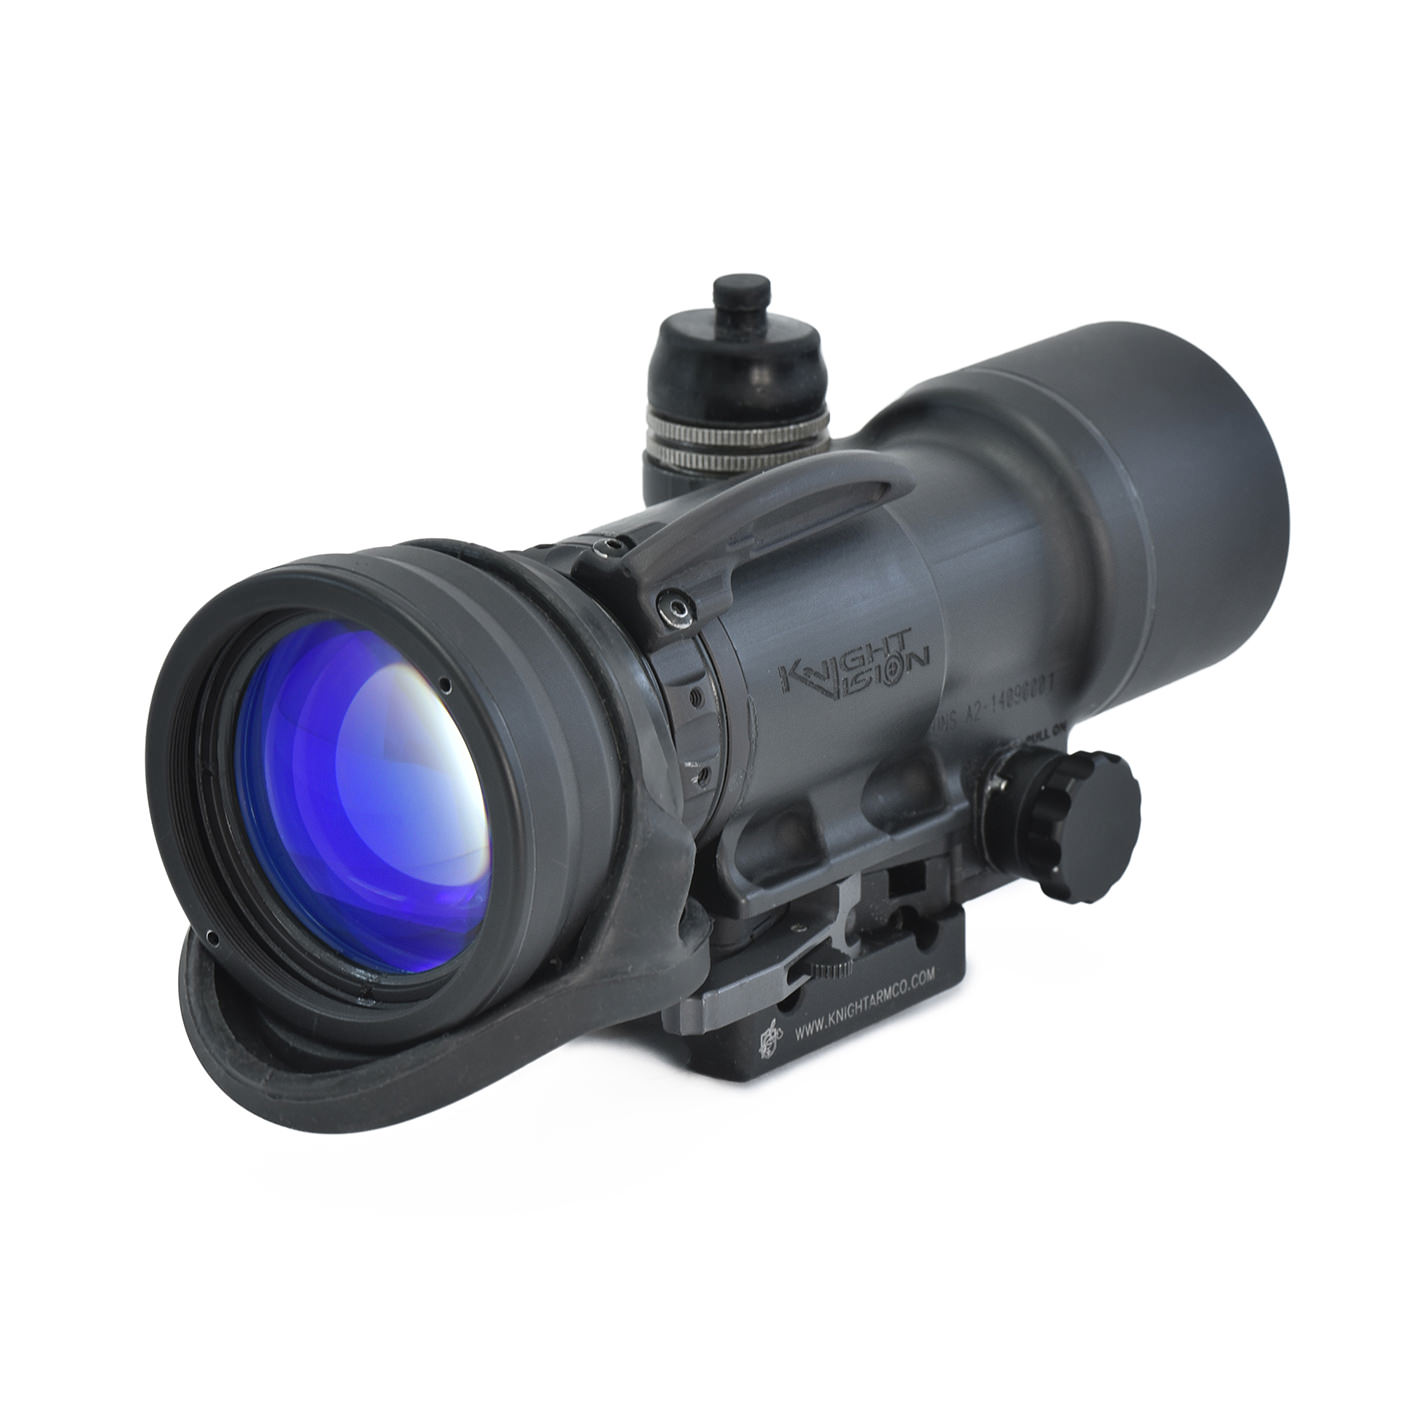 Knight Vision® UNS-A2 Night Vision Clip-on Weapon Sight